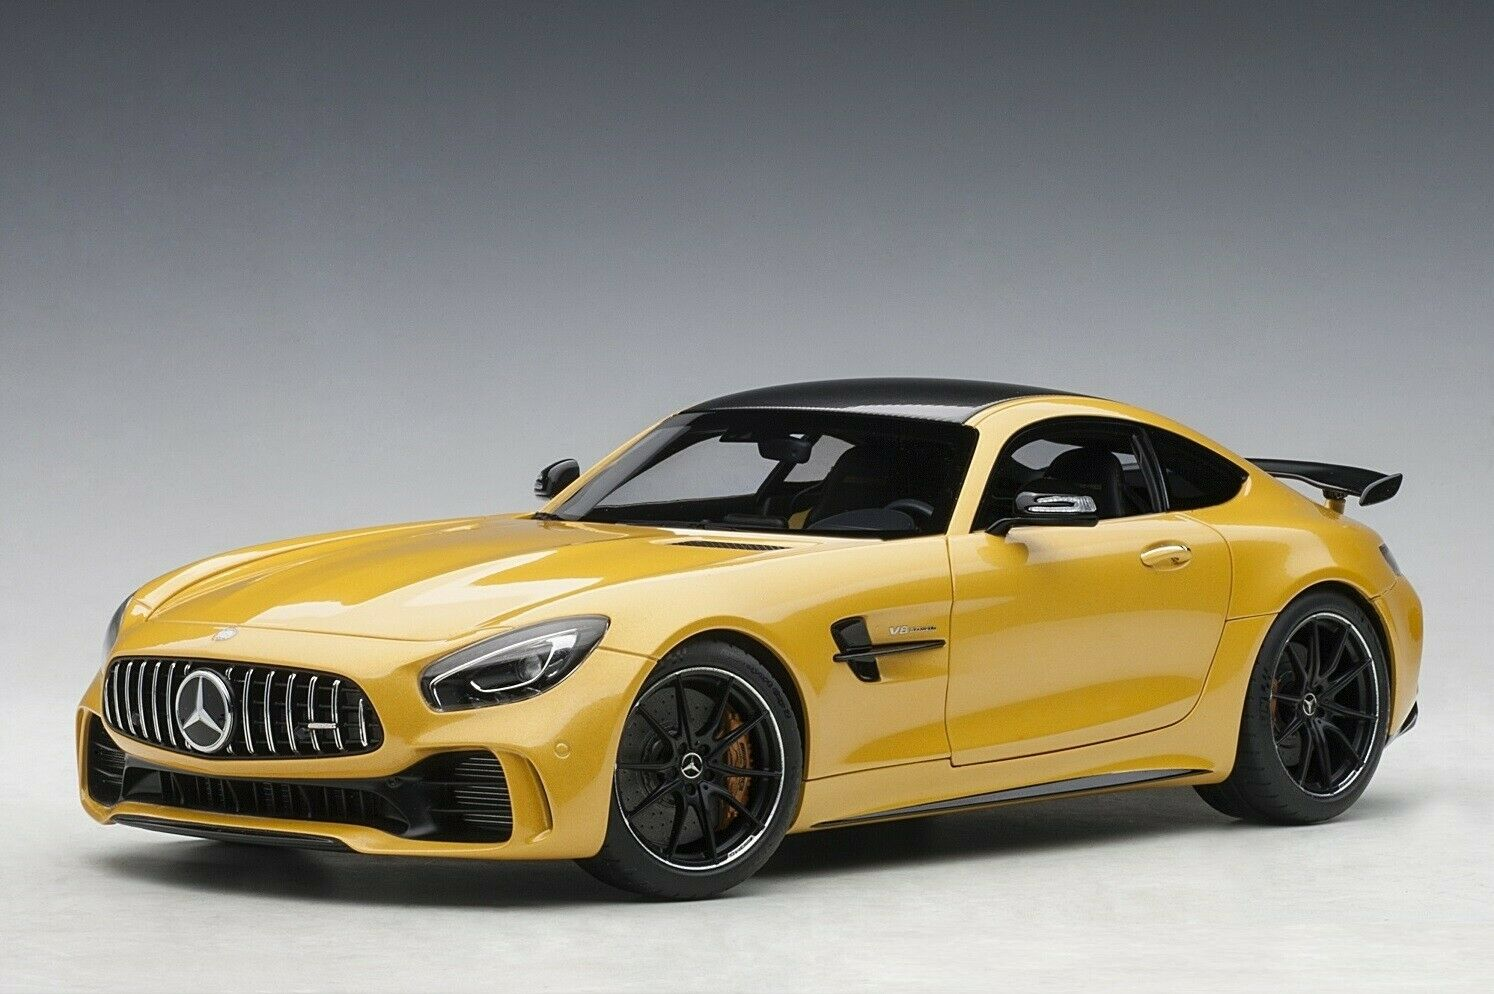 MERCEDES-BENZ AMG GT R SOLAR BEAM YELLOW 1 18 AUTOART 76332 NEW RELEASE IN BOX